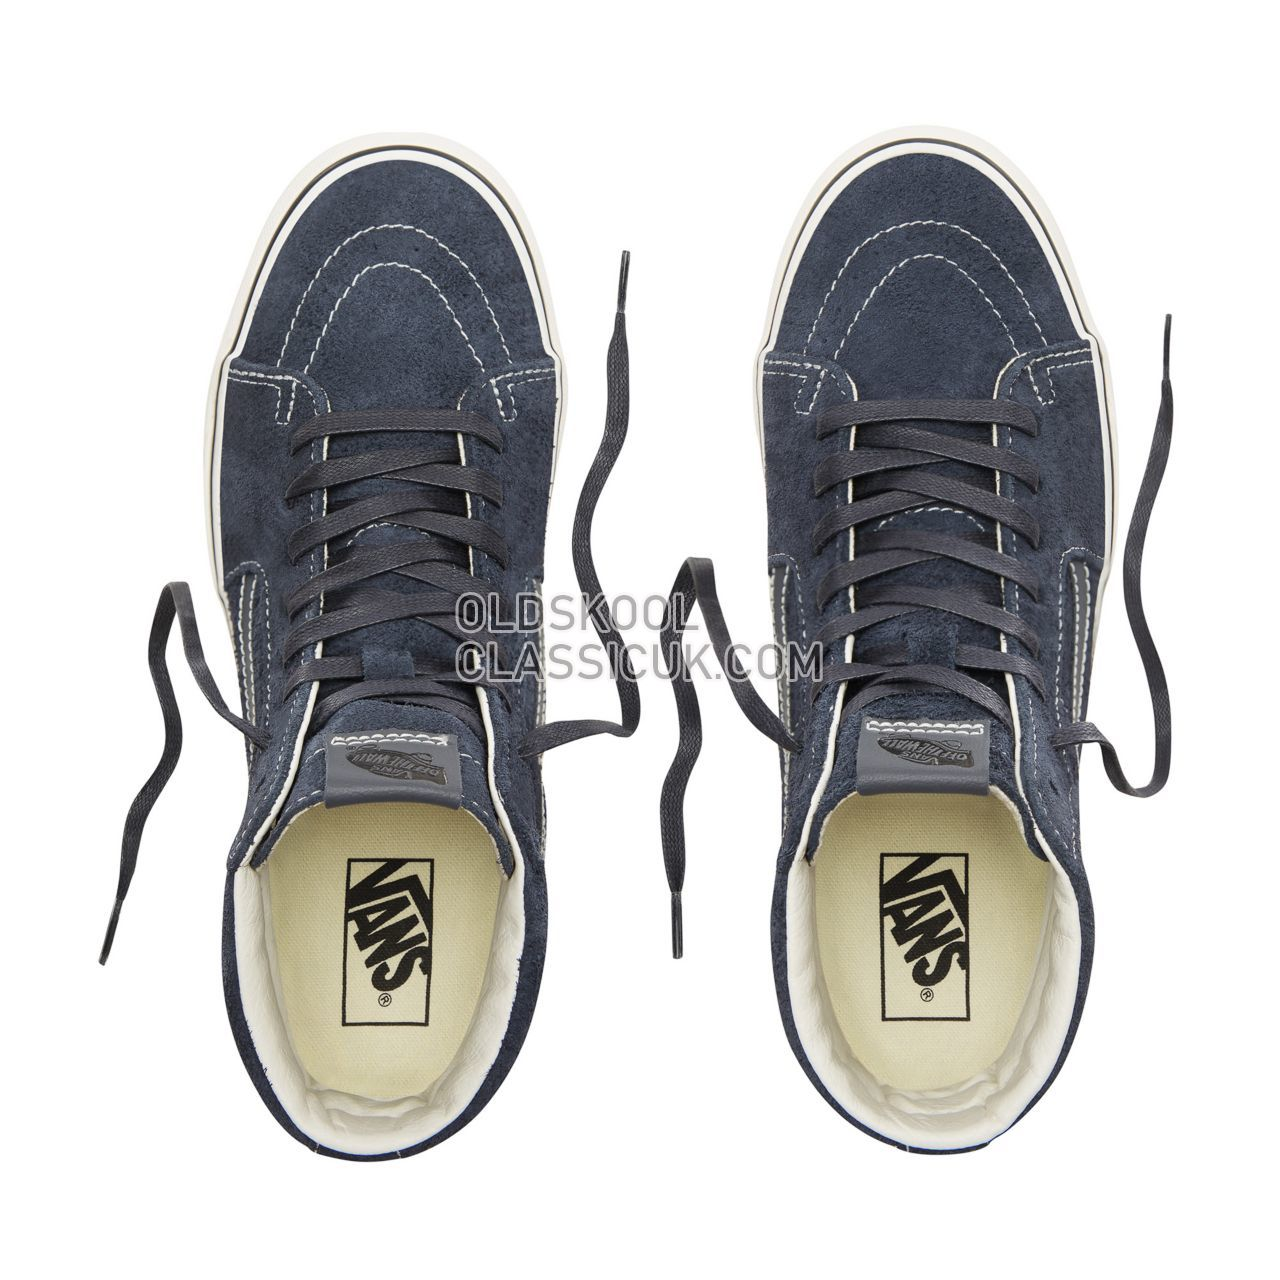 Vans Hairy Suede Sk8-Hi Sneakers Mens (Hairy Suede) Sky Captain/Snow White VN0A38GEULQ Shoes